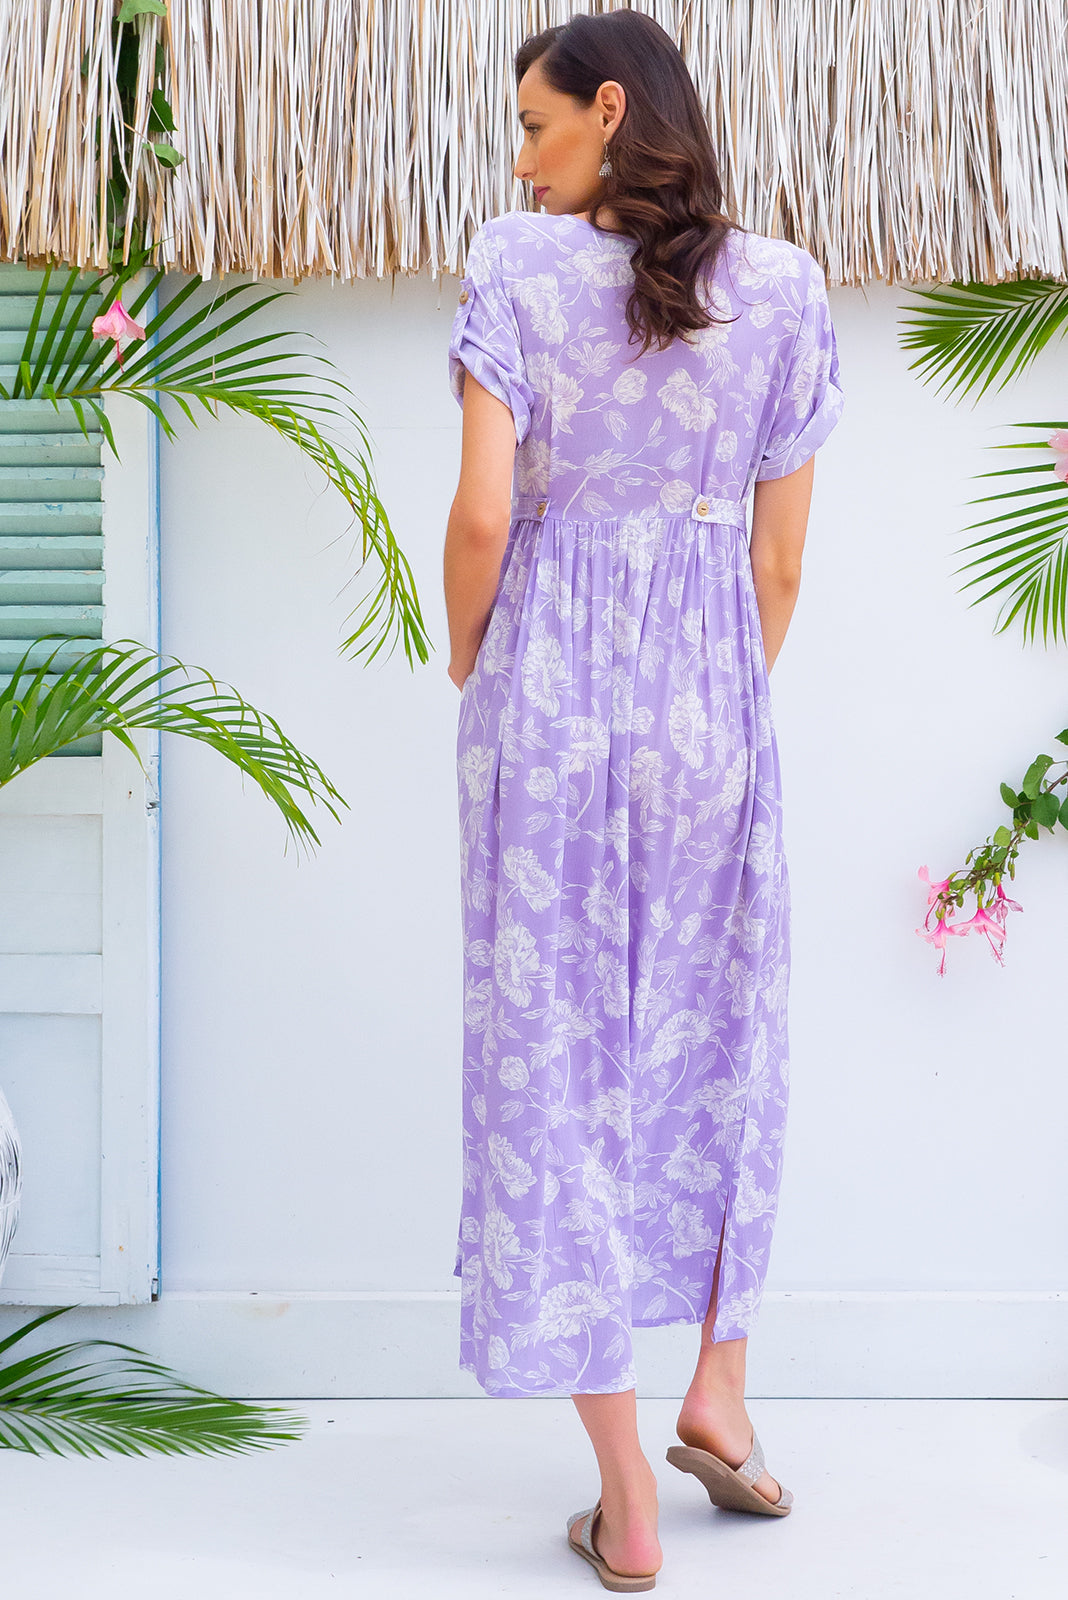 Rocco Lavender Love button front maxi dress with roll up tab sleeves, deep side pockets, adjustable tab waist and a soft loose fit comes in a bright lavender and white floral print on crinkle textured 100% rayon